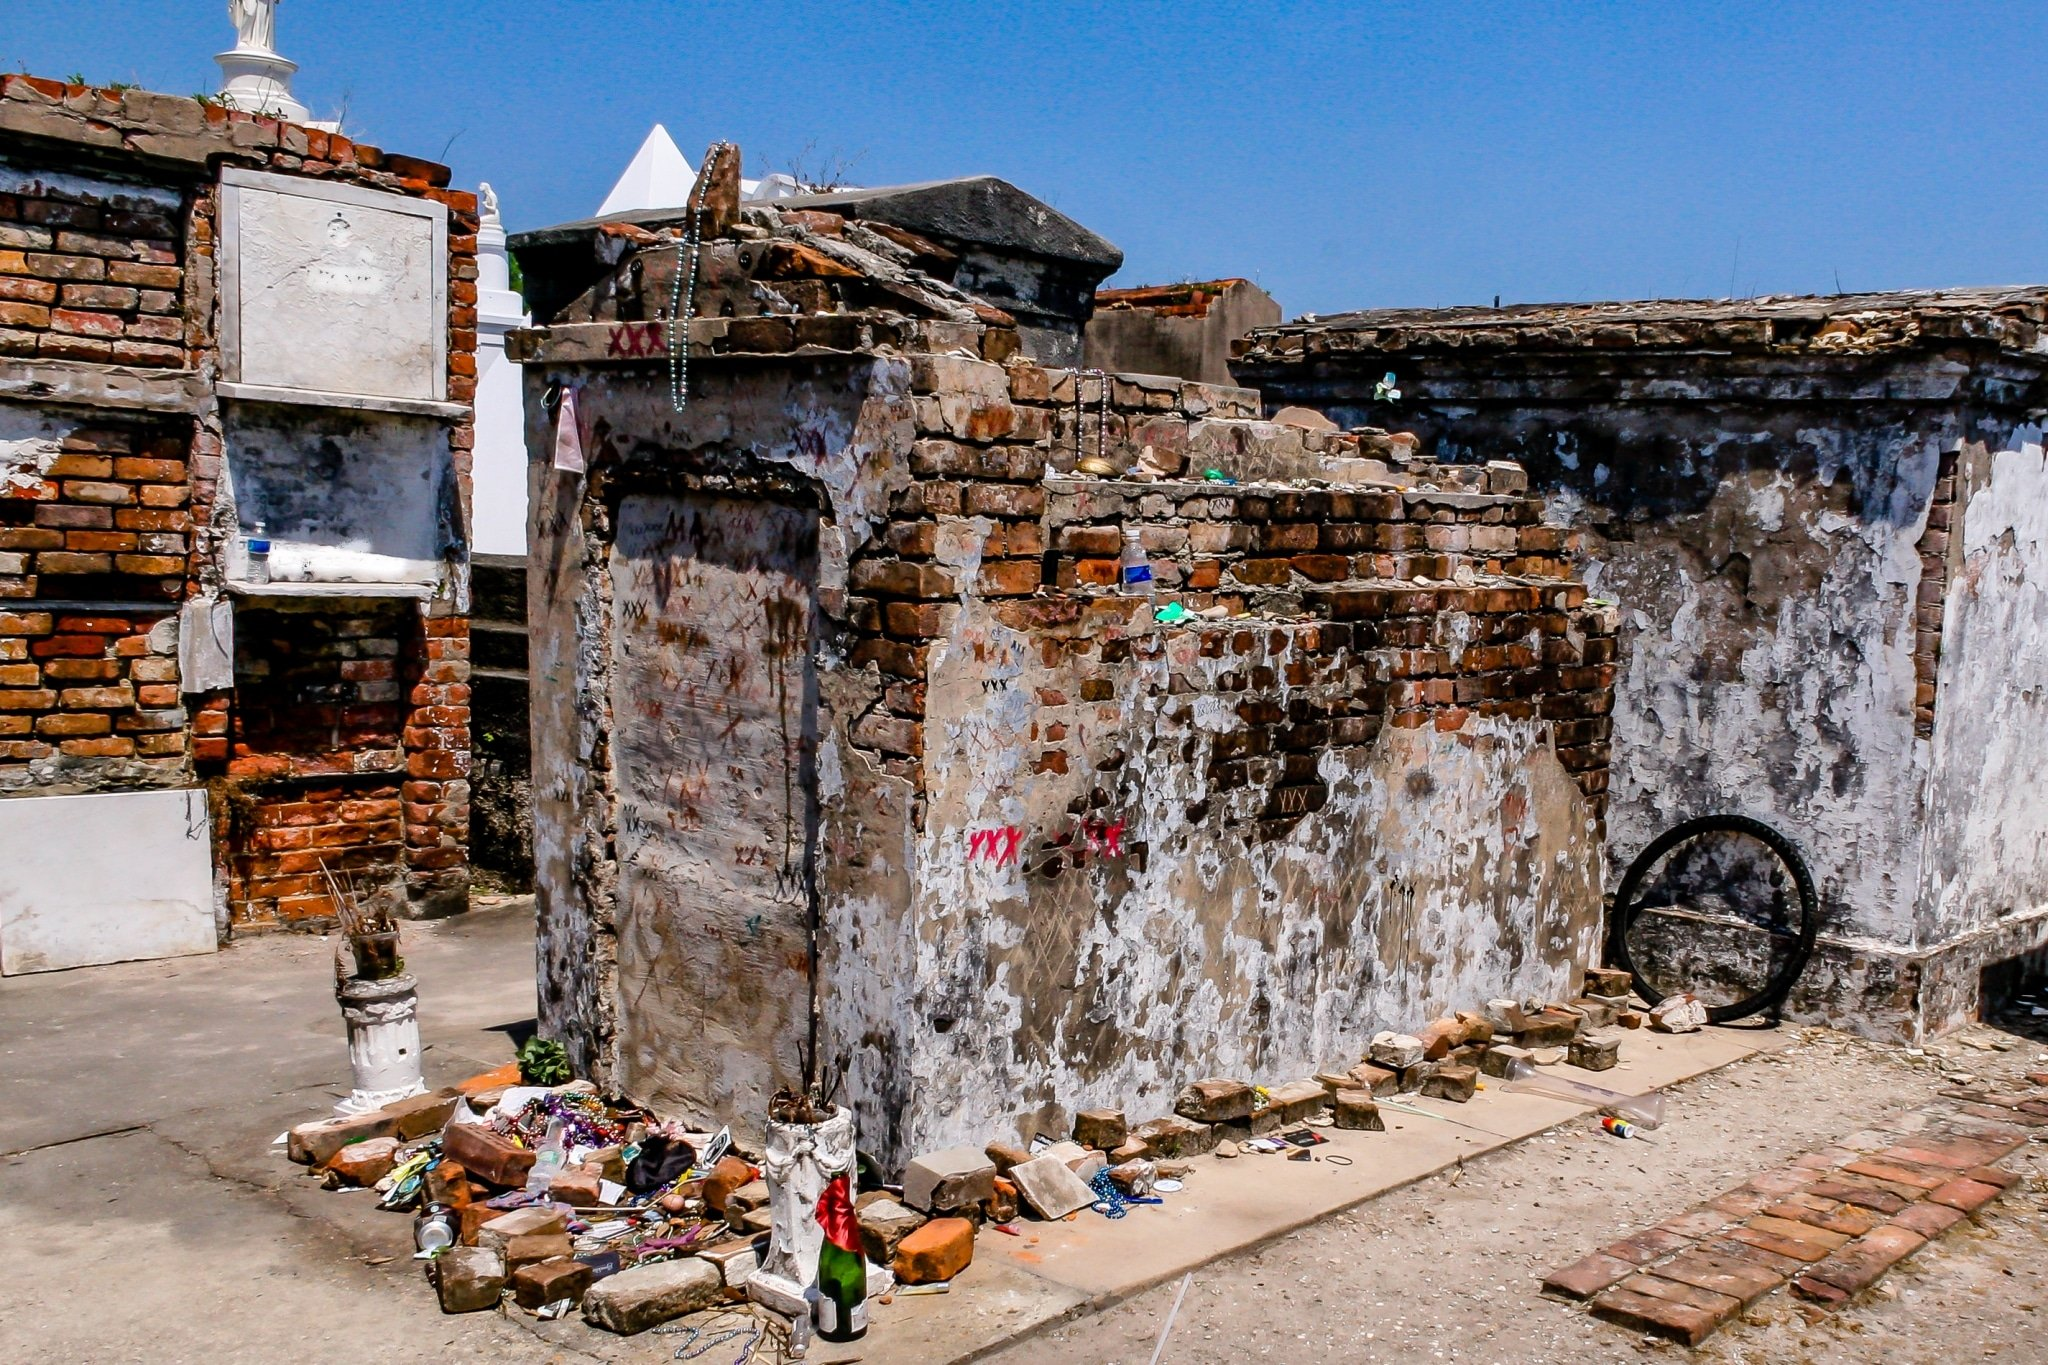 Marie-Leveau-tomb-in-St.-Louis-Cemetery-No.-1.jpg